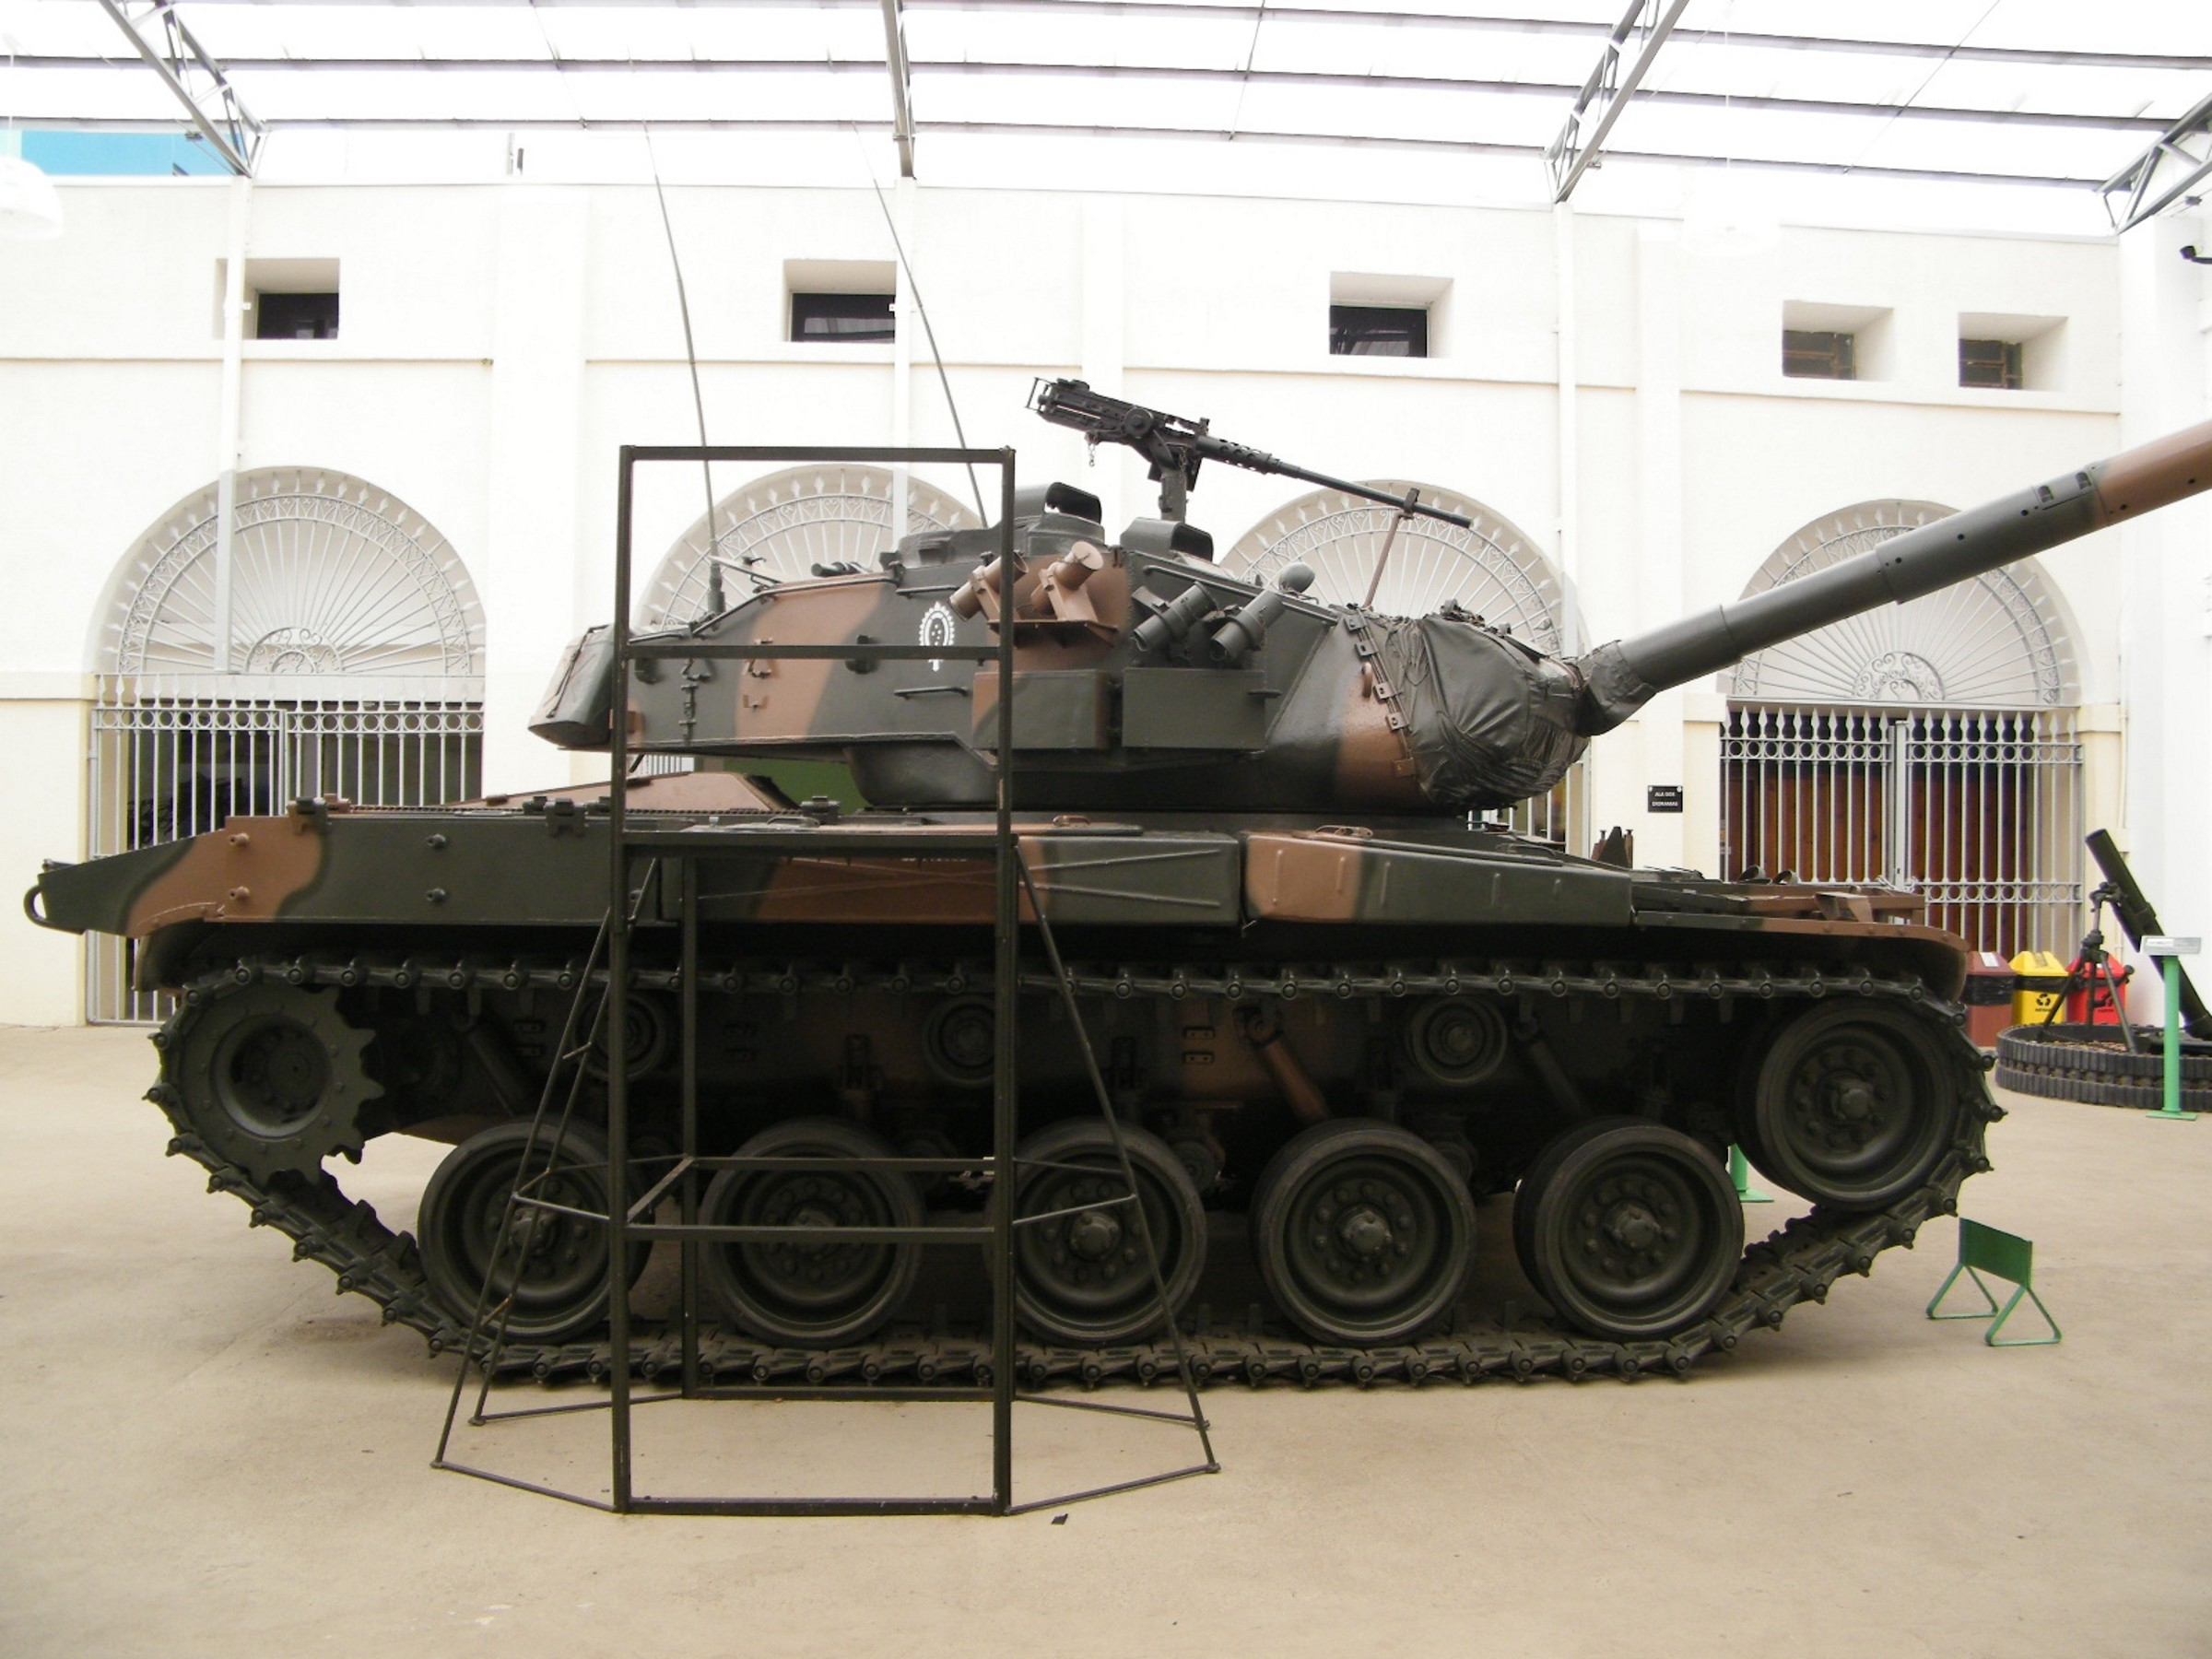 M41B Walker Bulldog